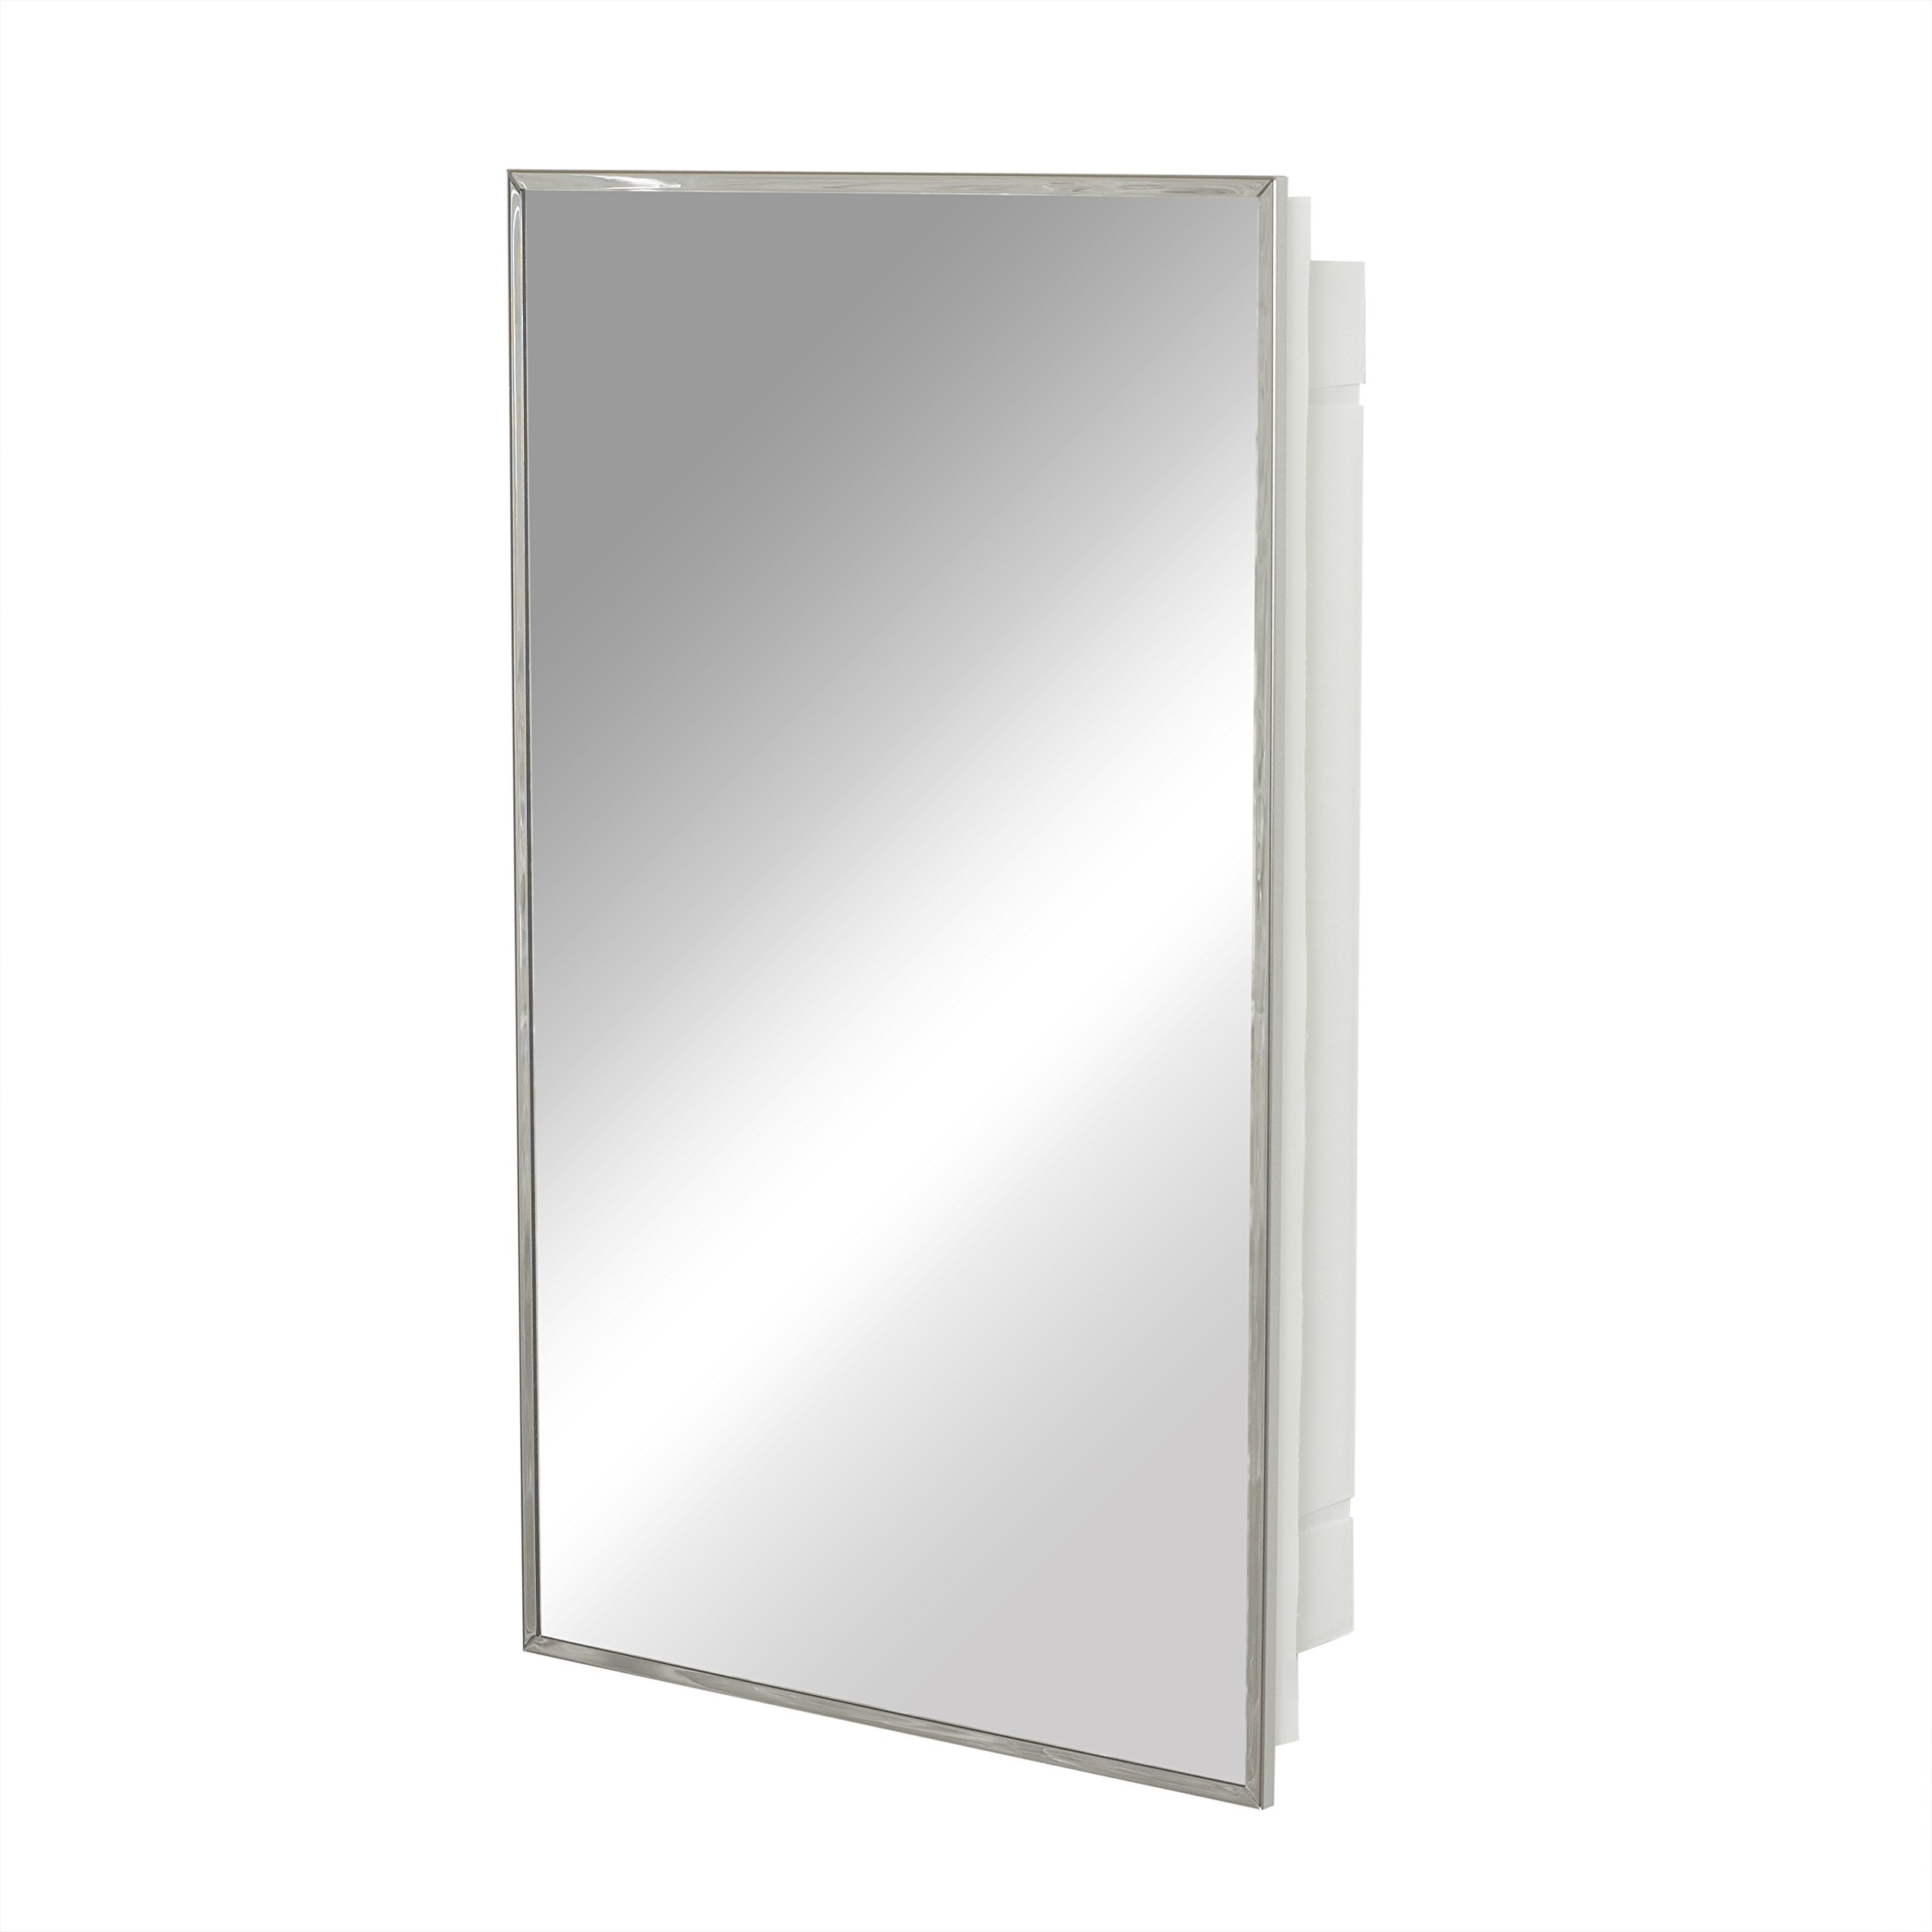 Zenith Products 105, Stainless Steel Framed Medicine Cabinet, 16 in x 26 in by ZPC Zenith Products Corporation